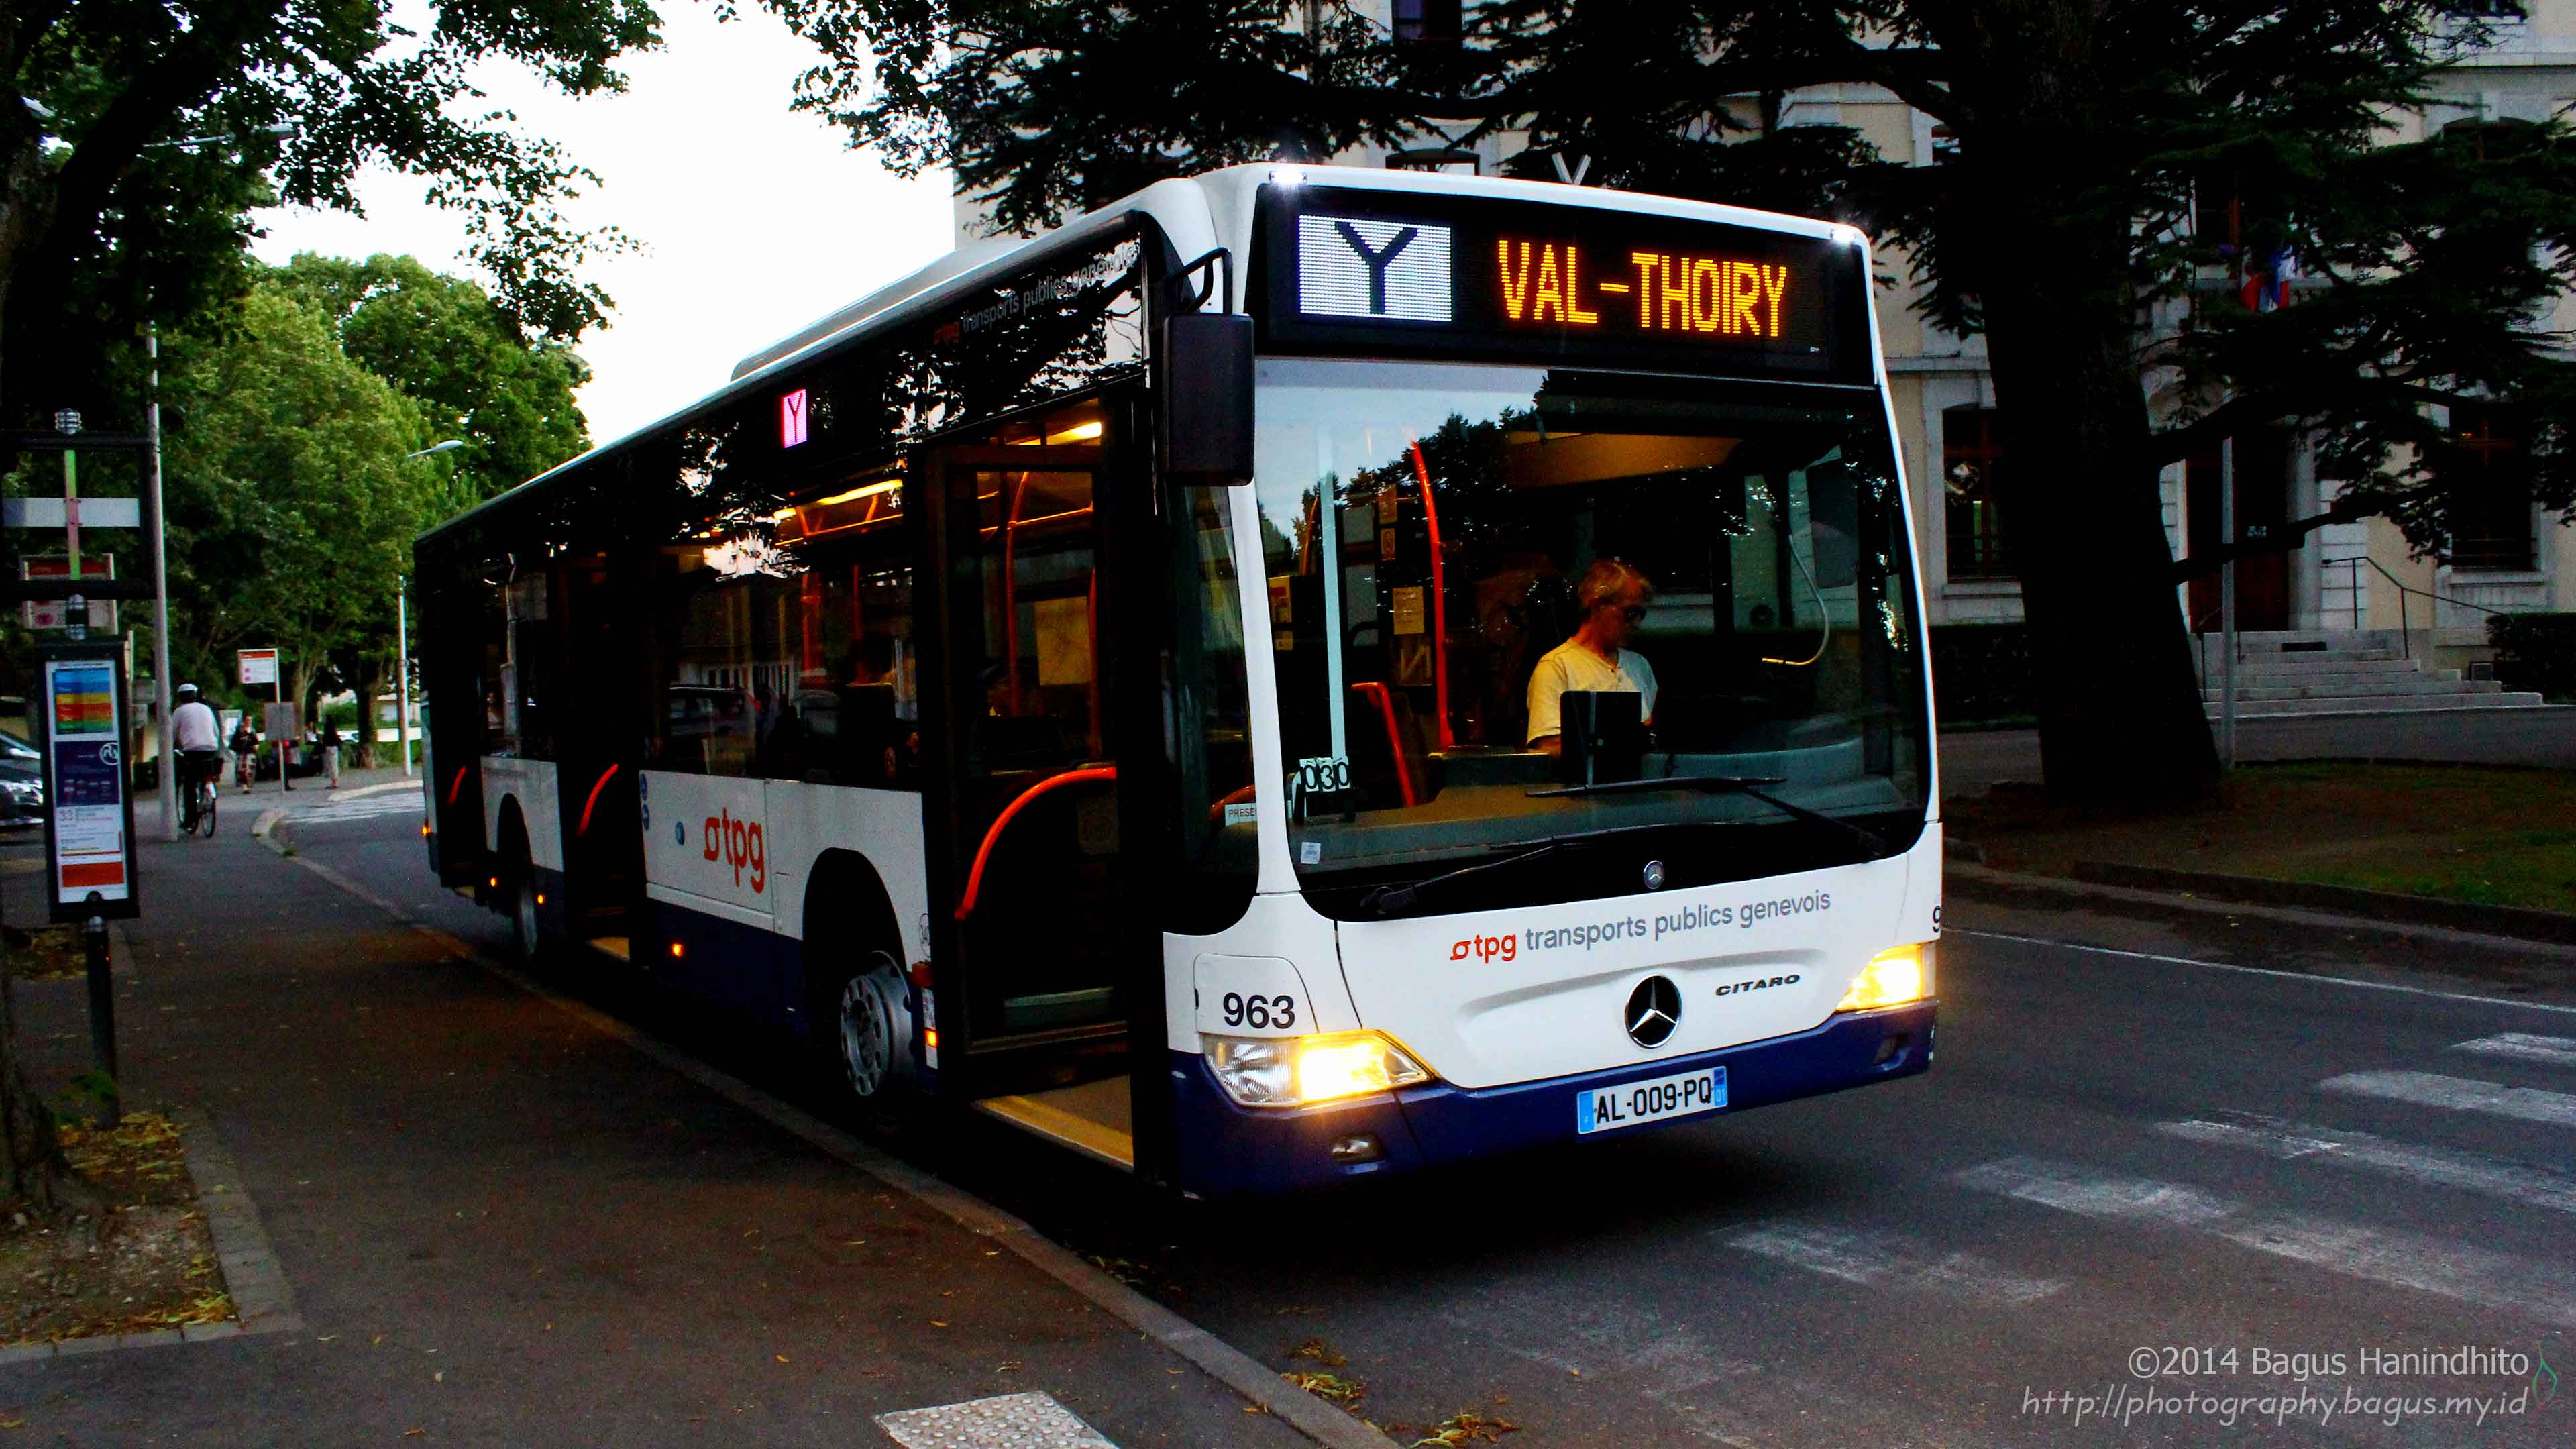 Bus Y, operated by TPG, connects Val-Thoiry – Geneva Airport – Ferney-Voltaire. It pass in front of CERN Meyrin Site.